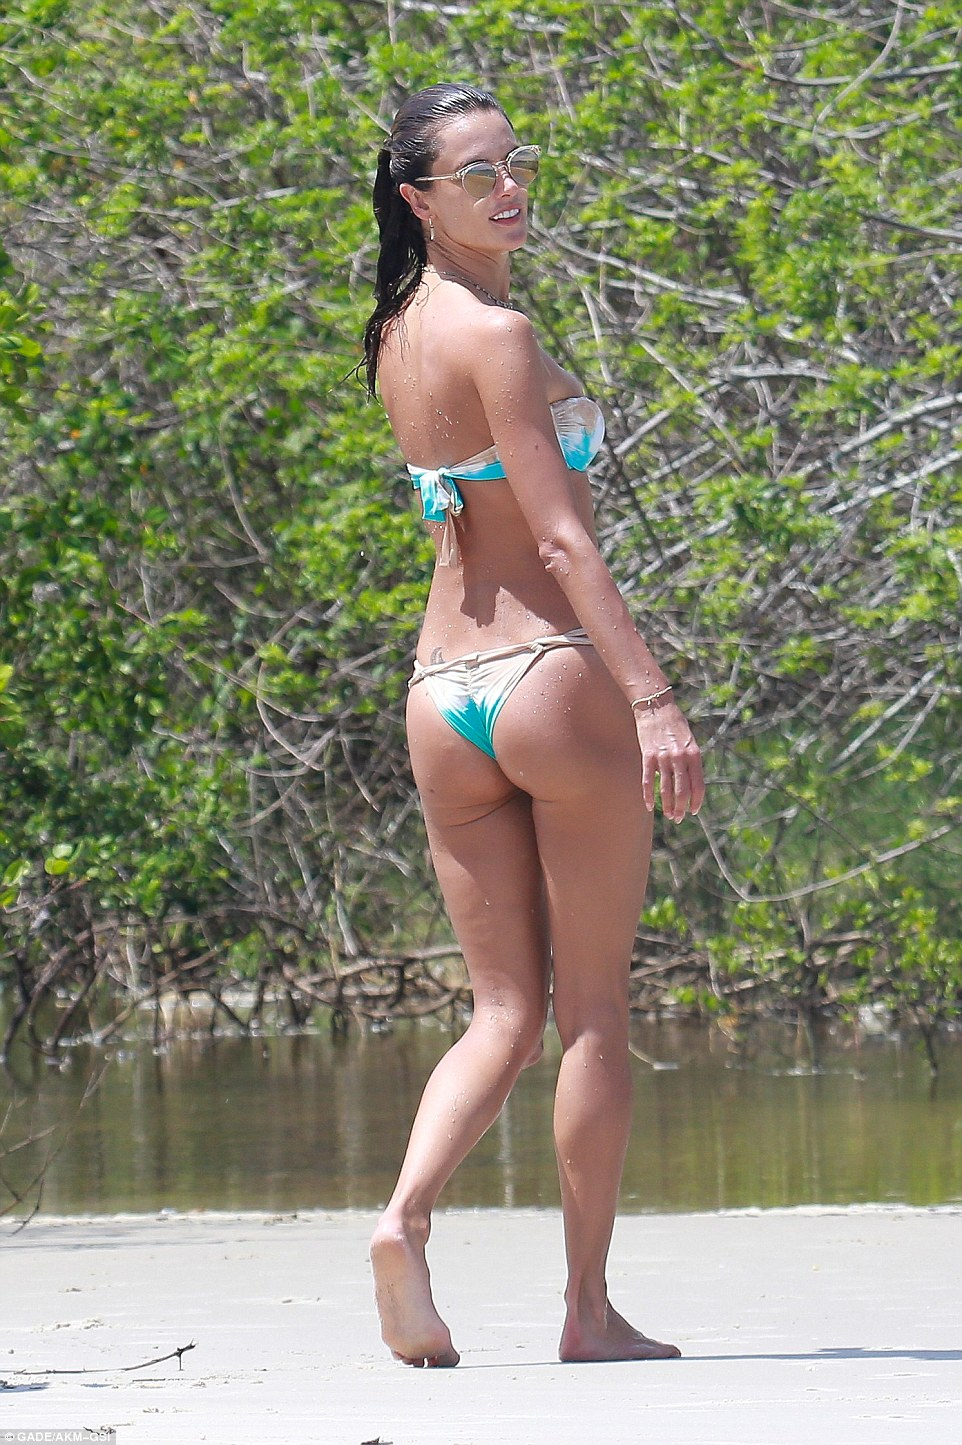 Her backside is generous though: The beauty shows off a rounded bottom